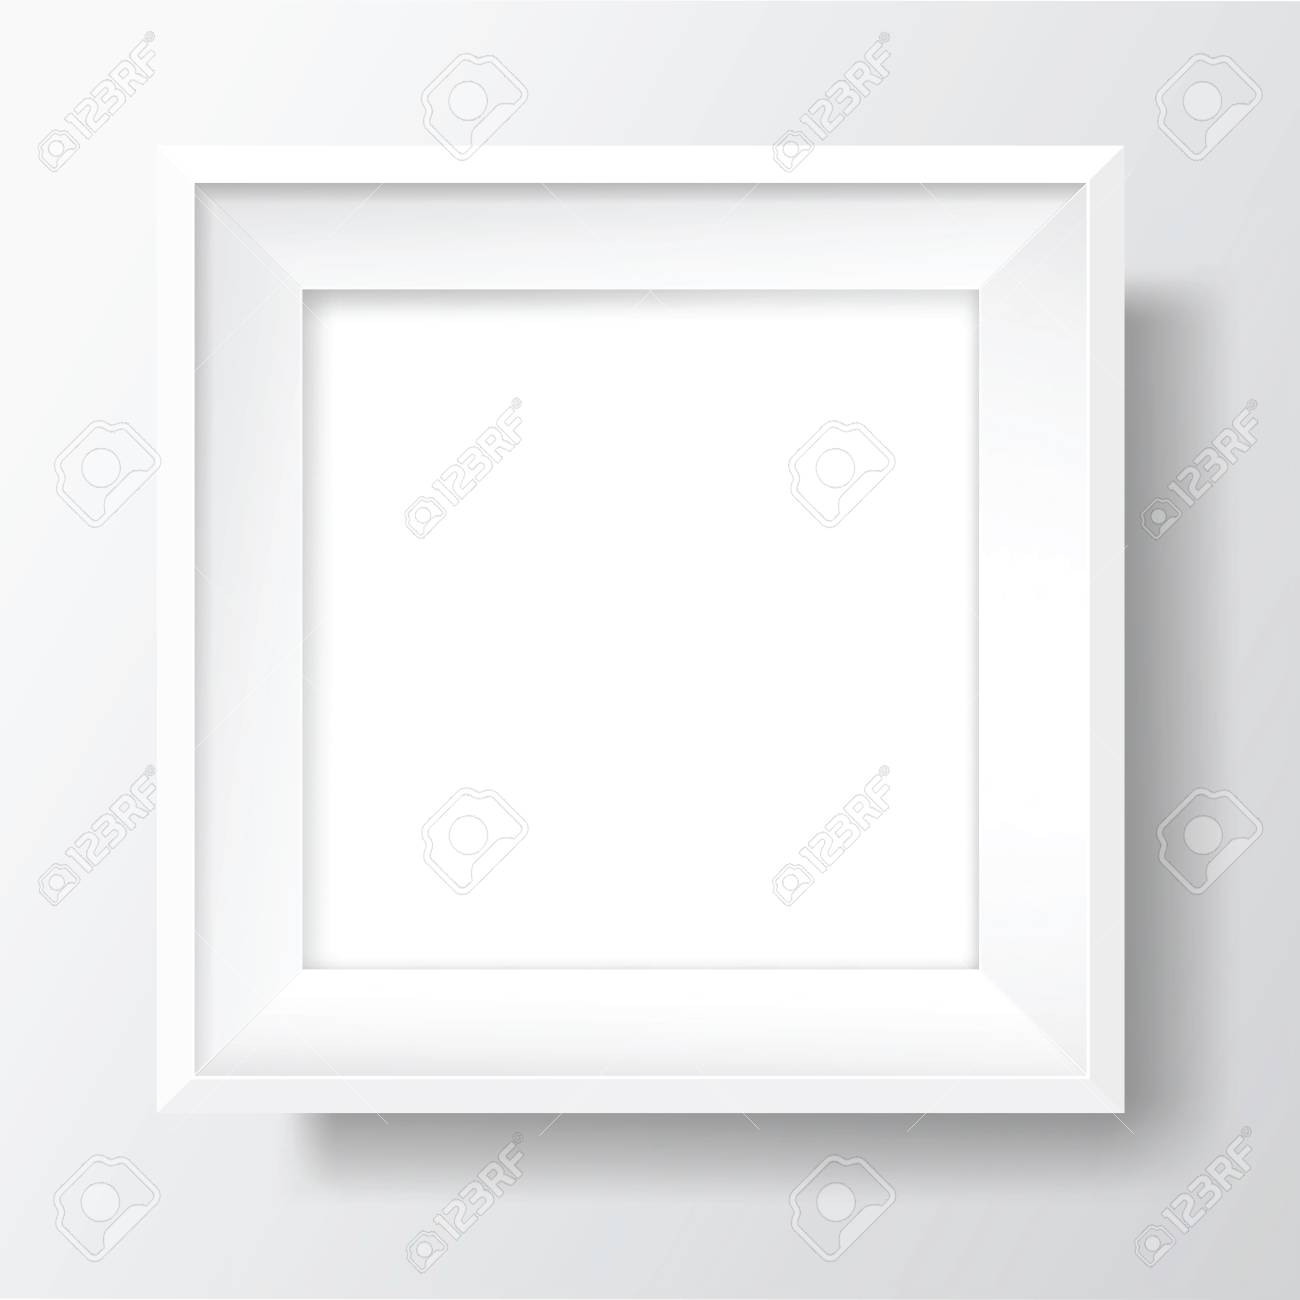 Square Blank picture frame template. Realistic white frame with shadows on white wall for photo or poster. Vector - 105719740